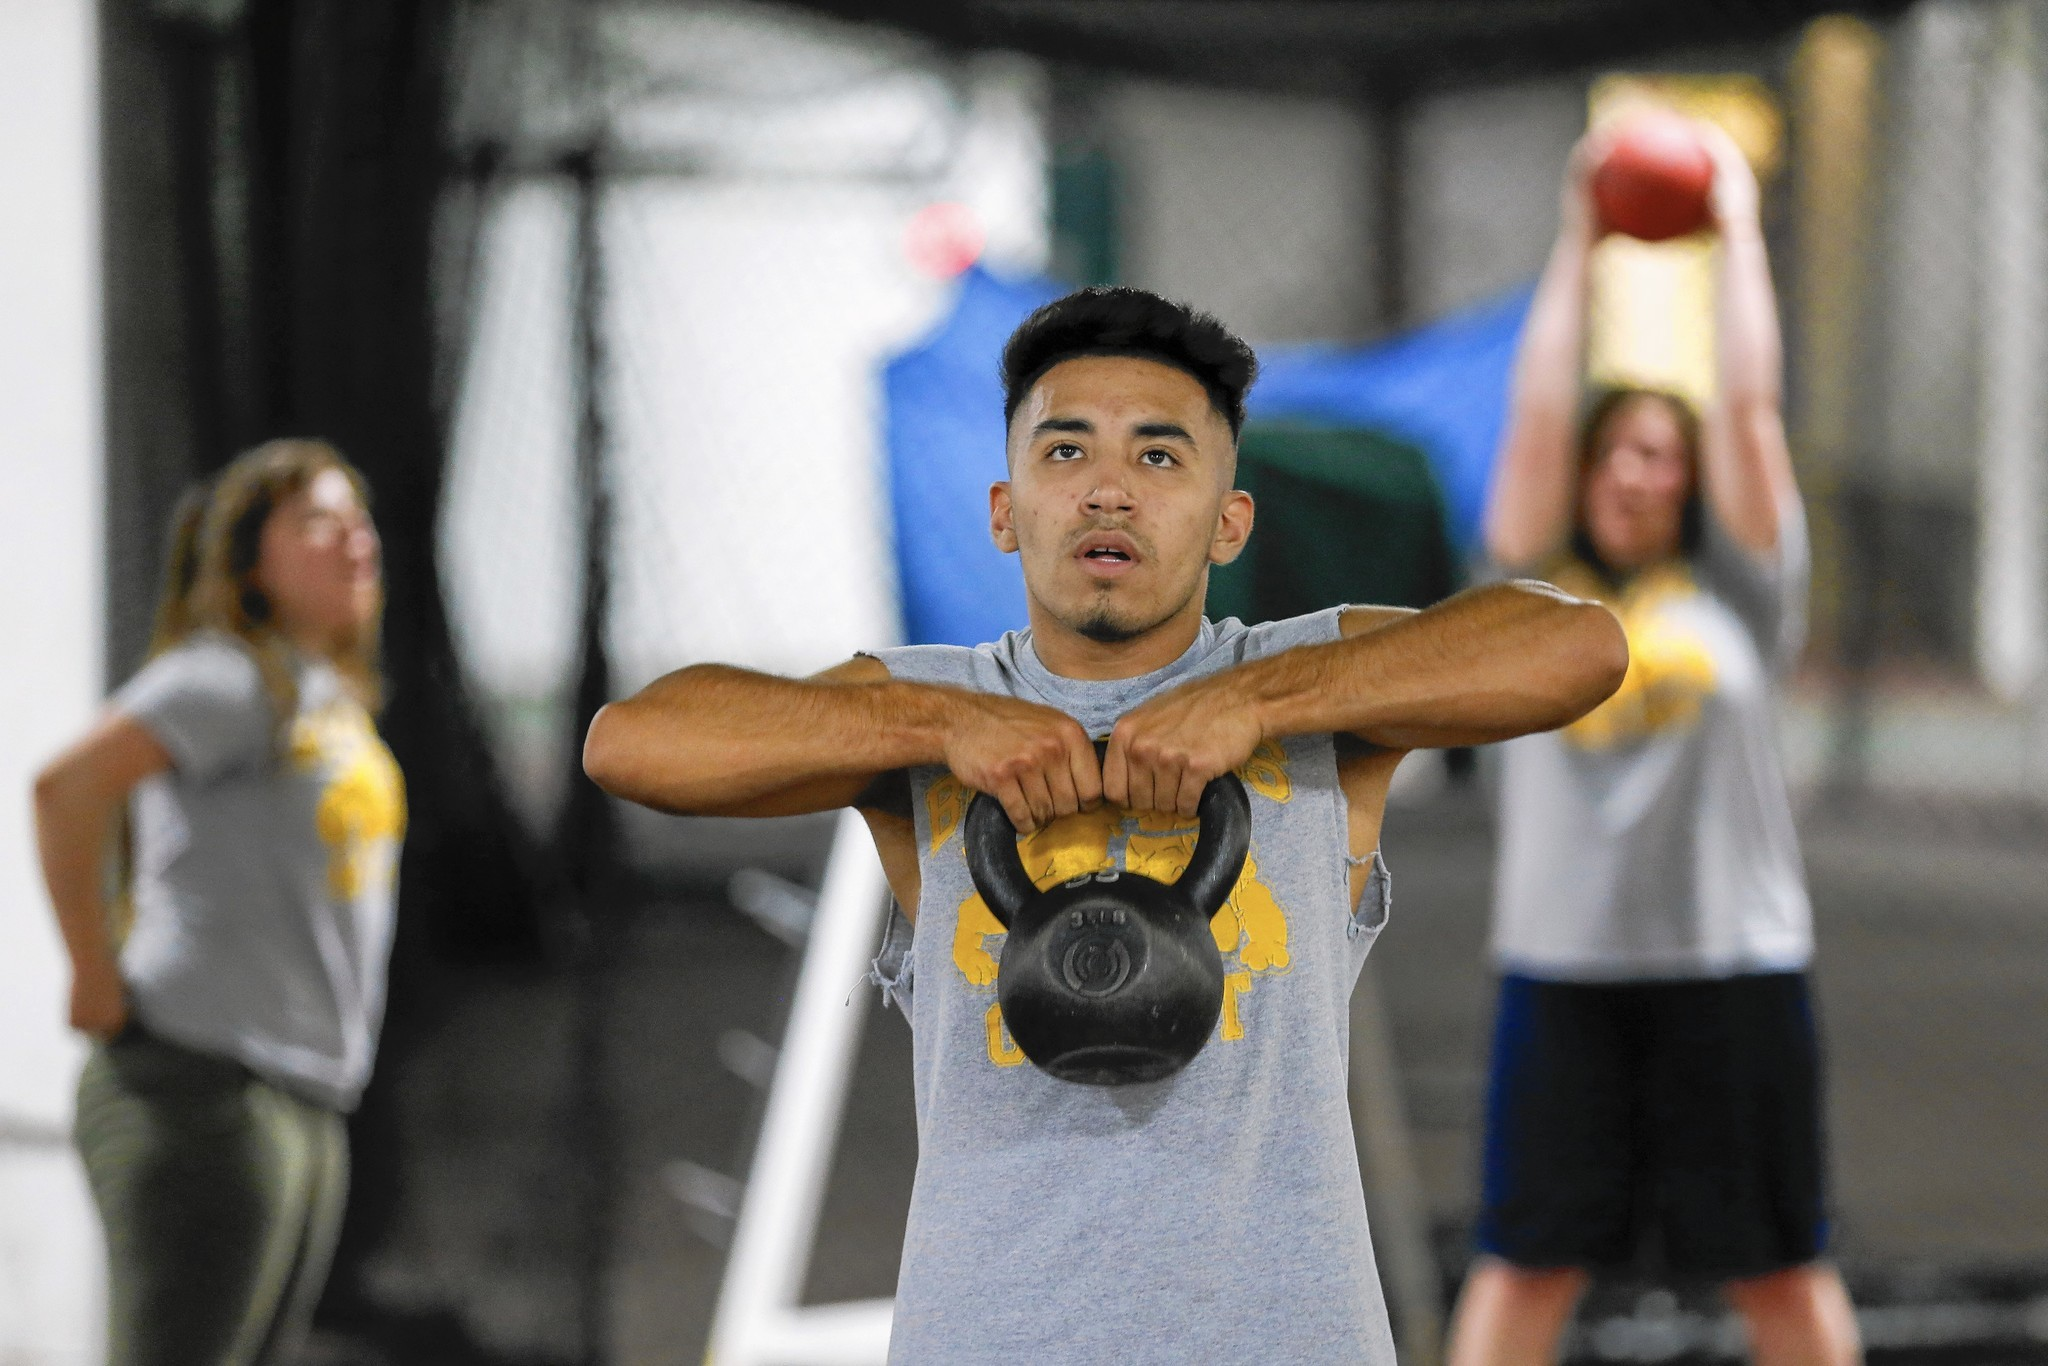 CrossFit workout fad powers its way into school PE classes